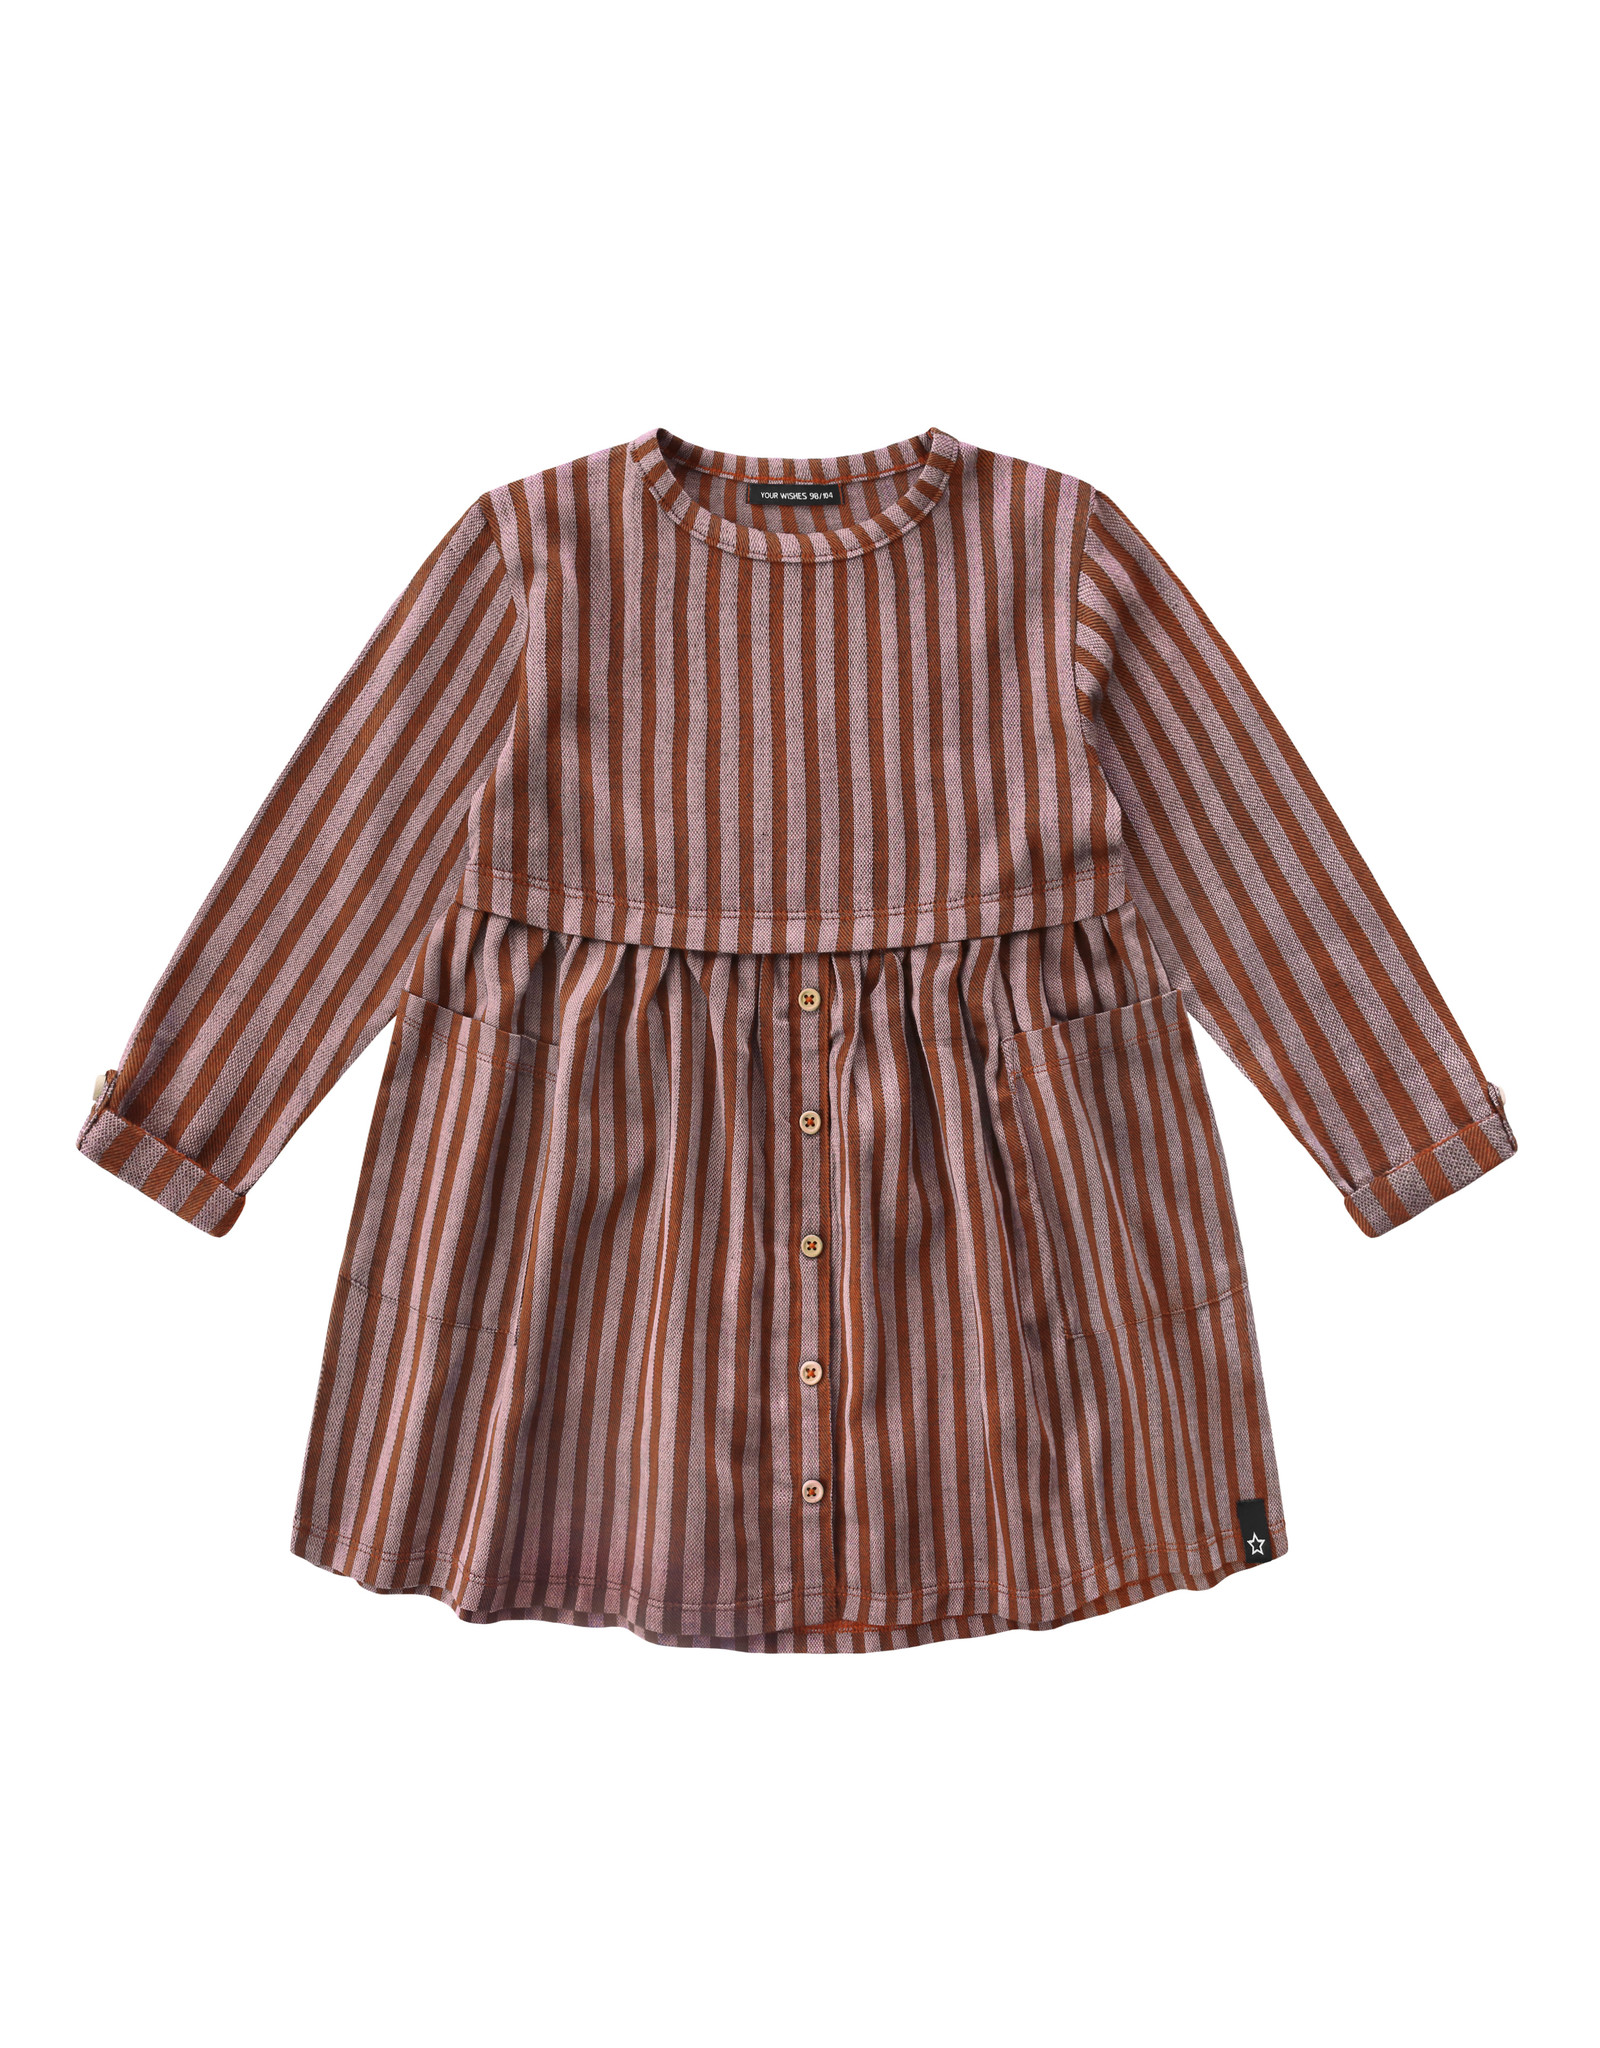 Your Wishes Rusty Stripes   Button Dress   Dark Rust